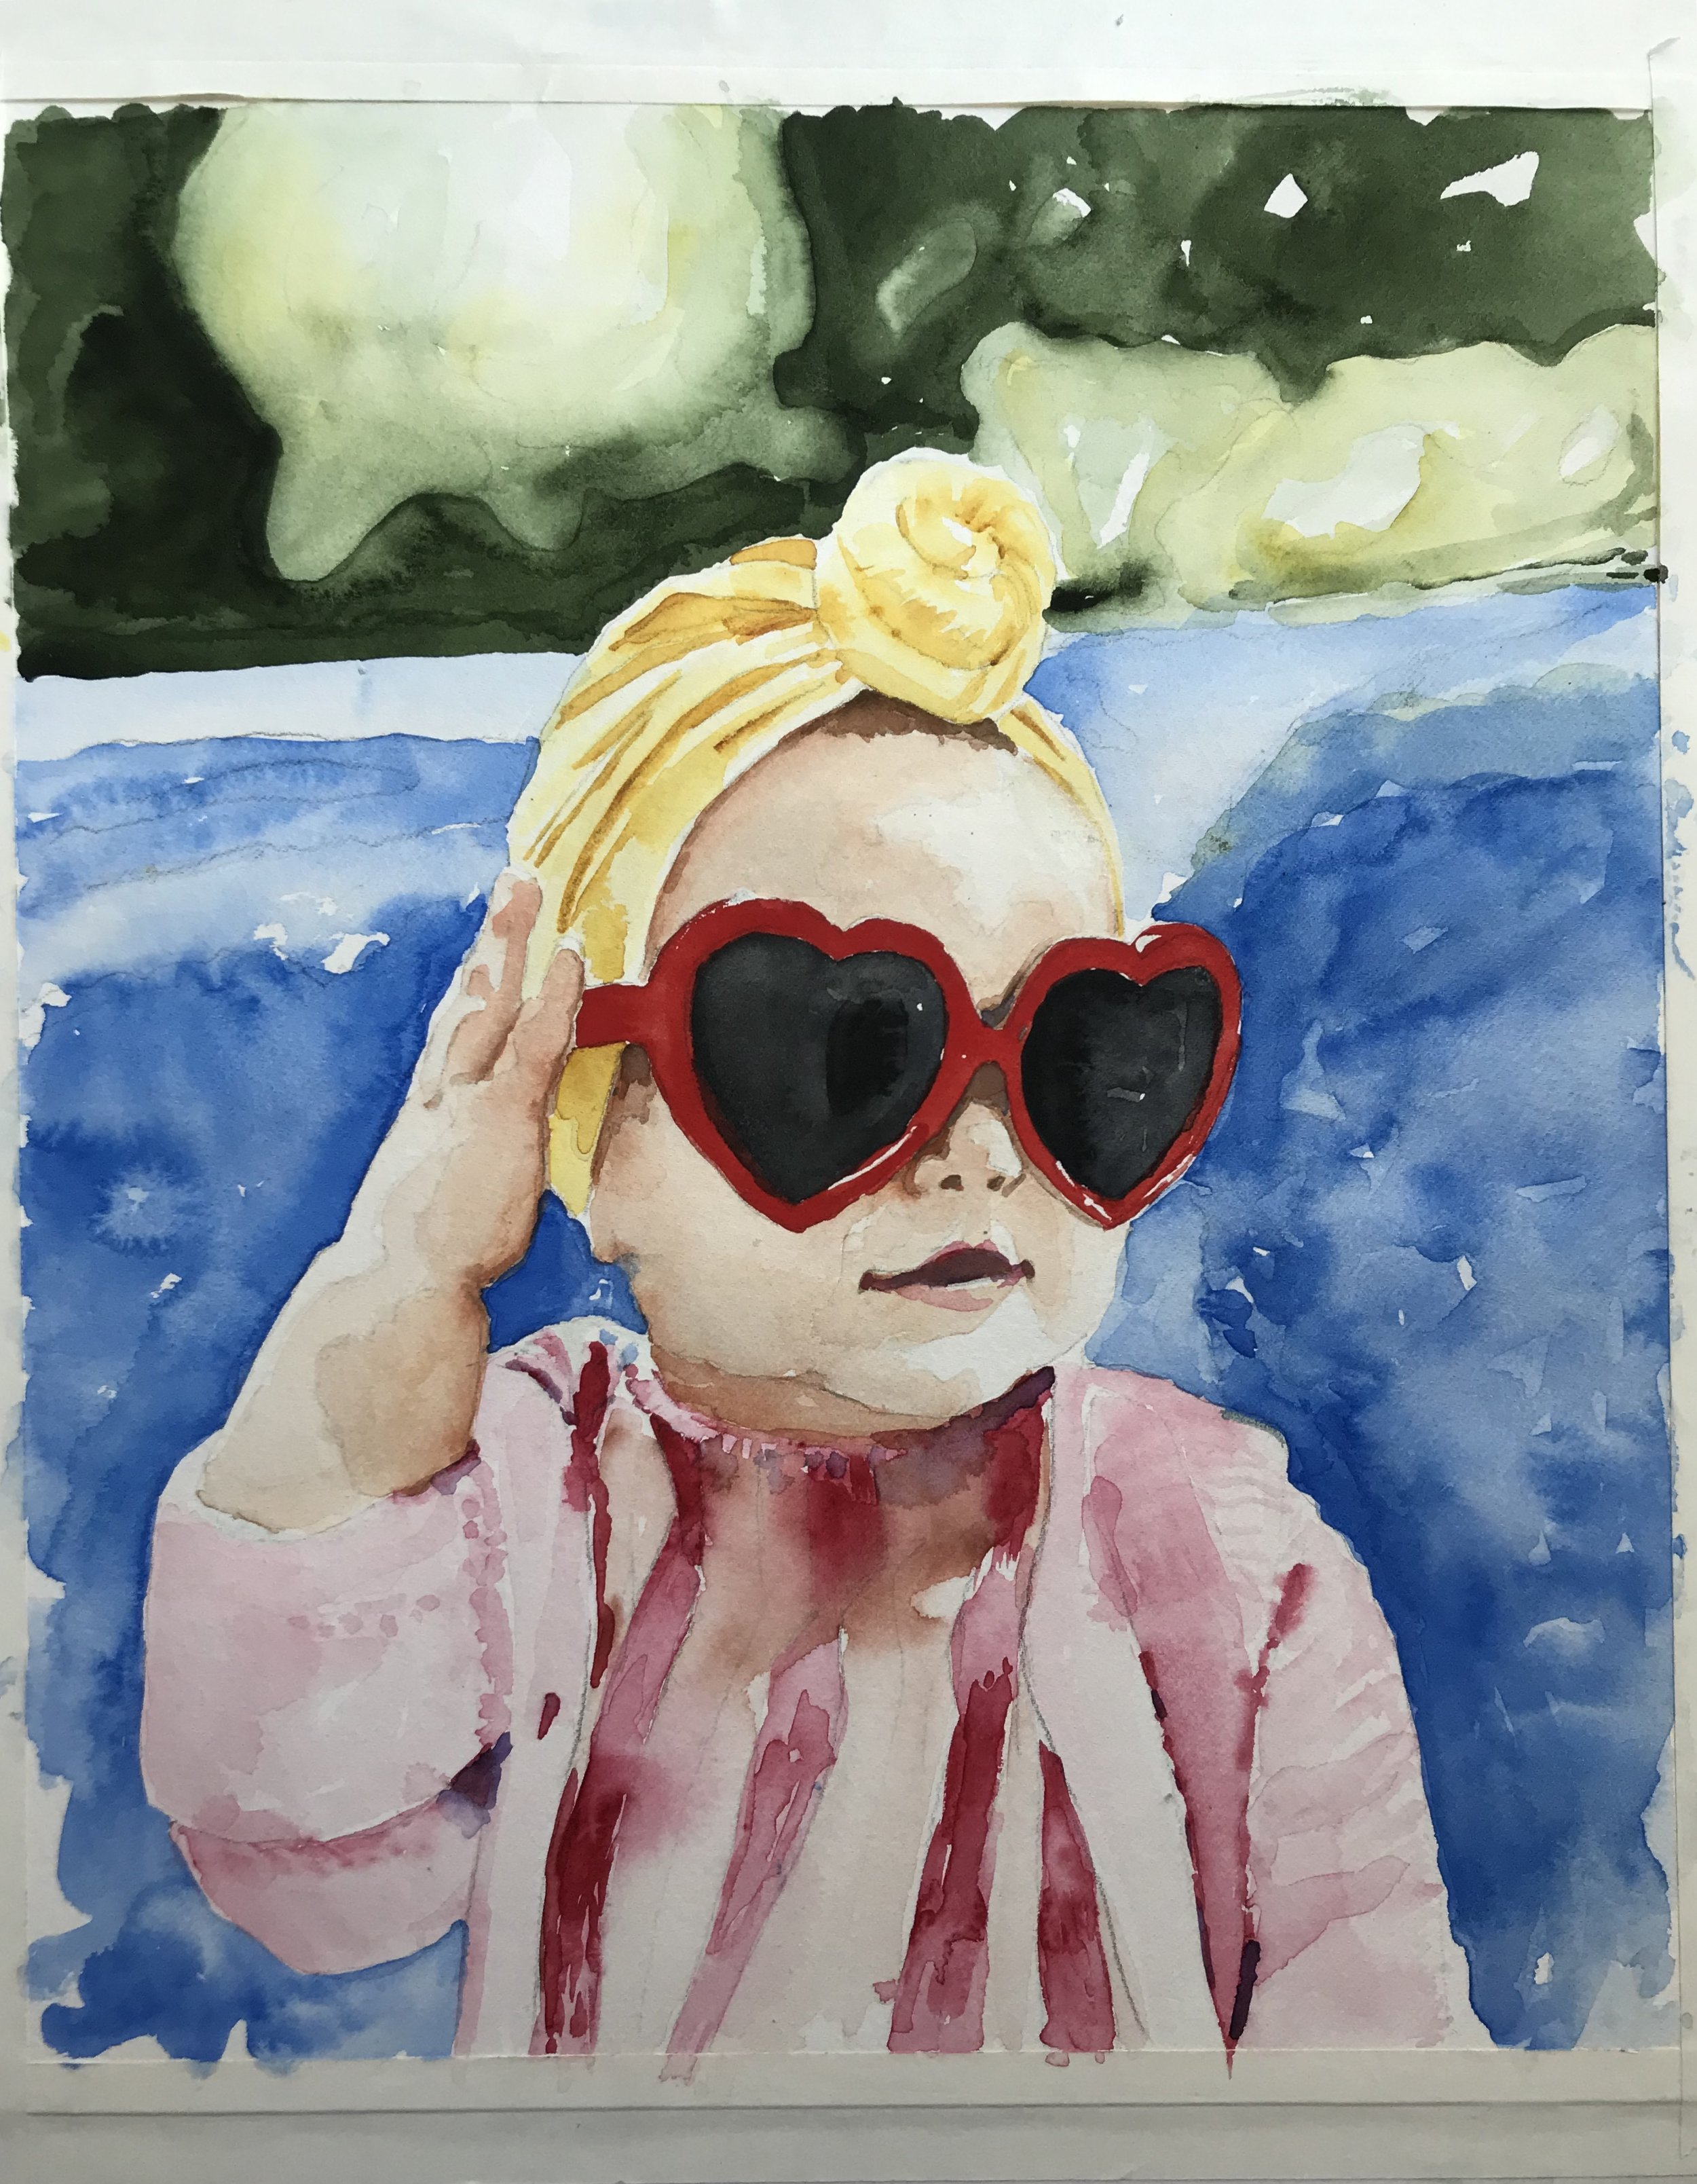 This commissioned painting illustrates the bold personality of this little girl.